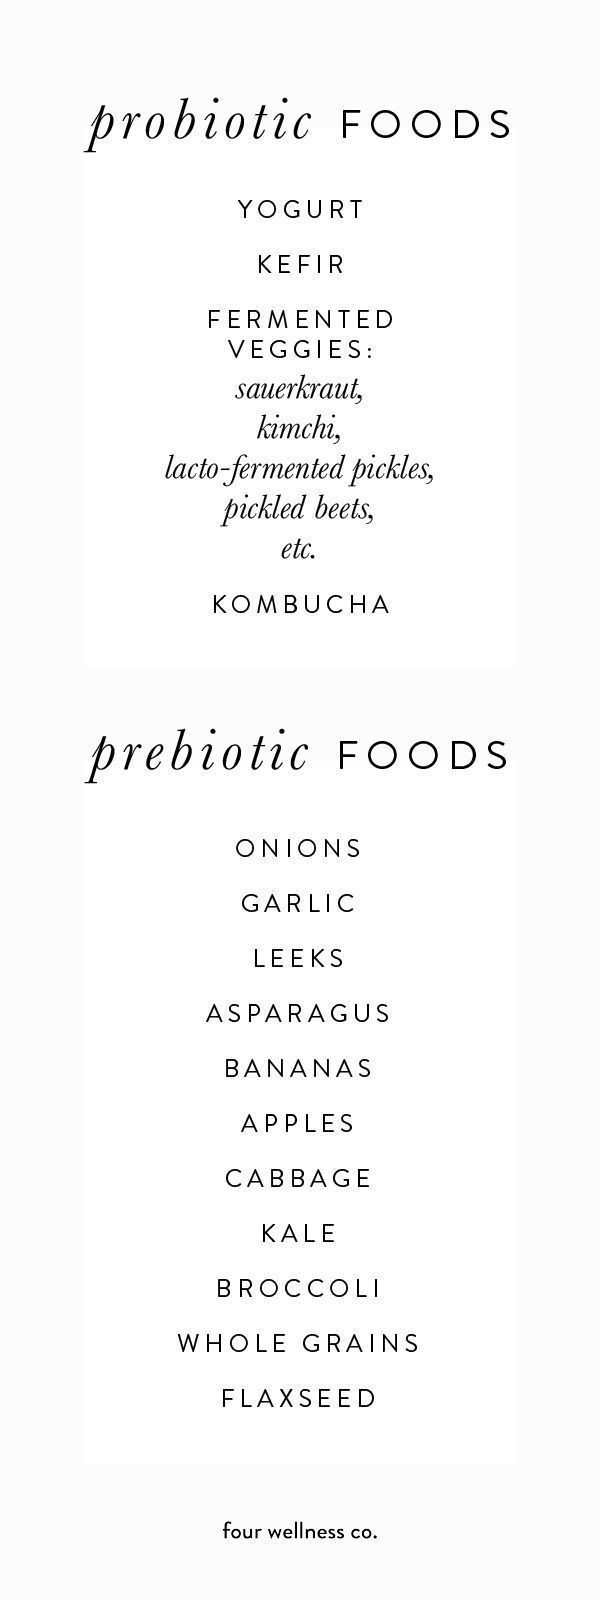 Why you need both probiotics  prebiotics  The health benefits of adding more probiotic and prebiotic foods into your diet  More wellness tips from a health coach at blog